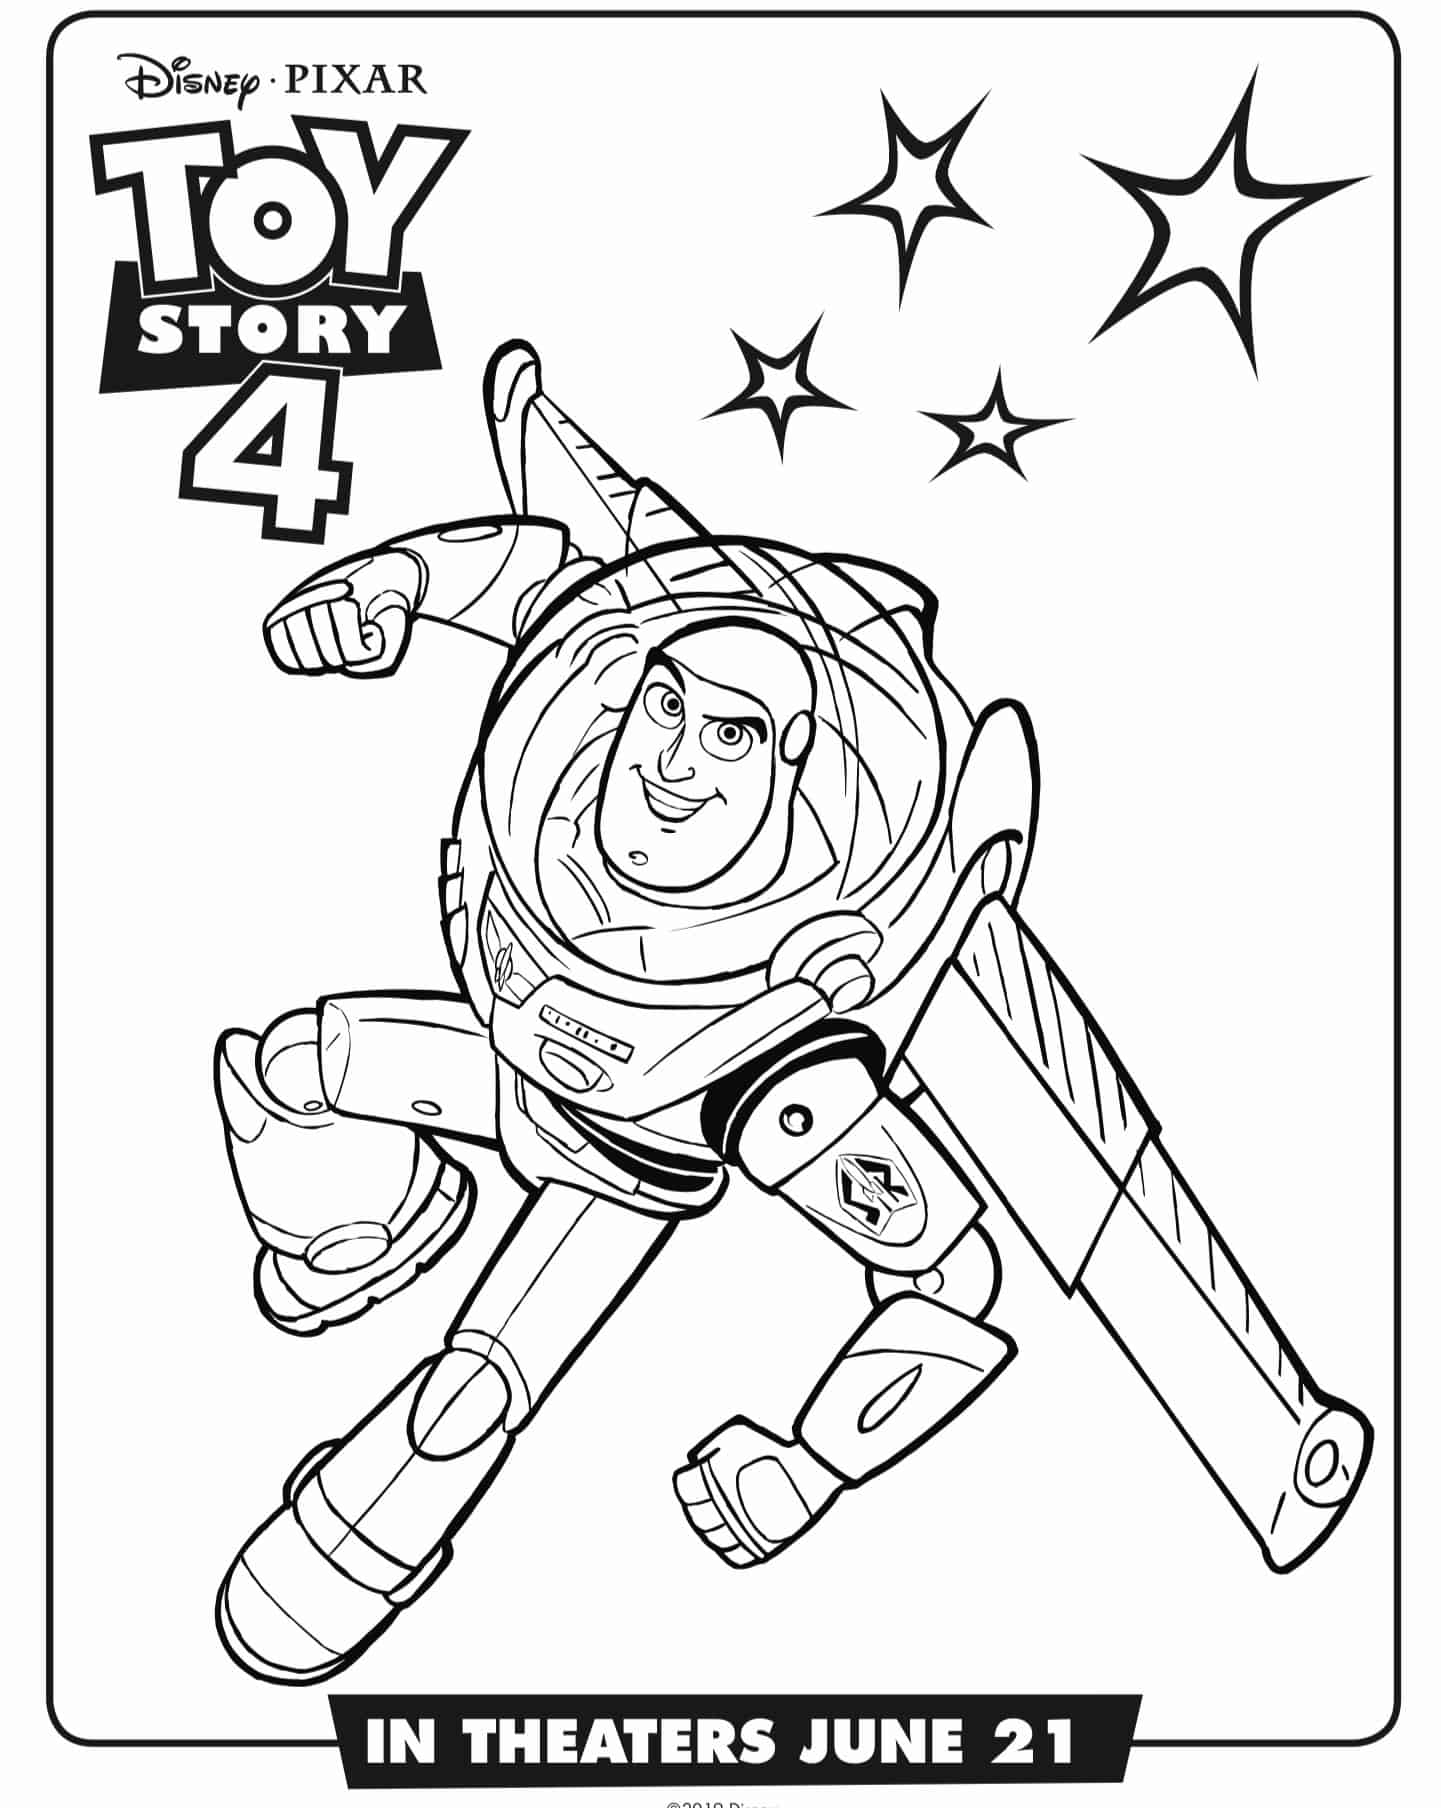 Toy Story 4 Movie Activity Sheets and Coloring Pages - A ...